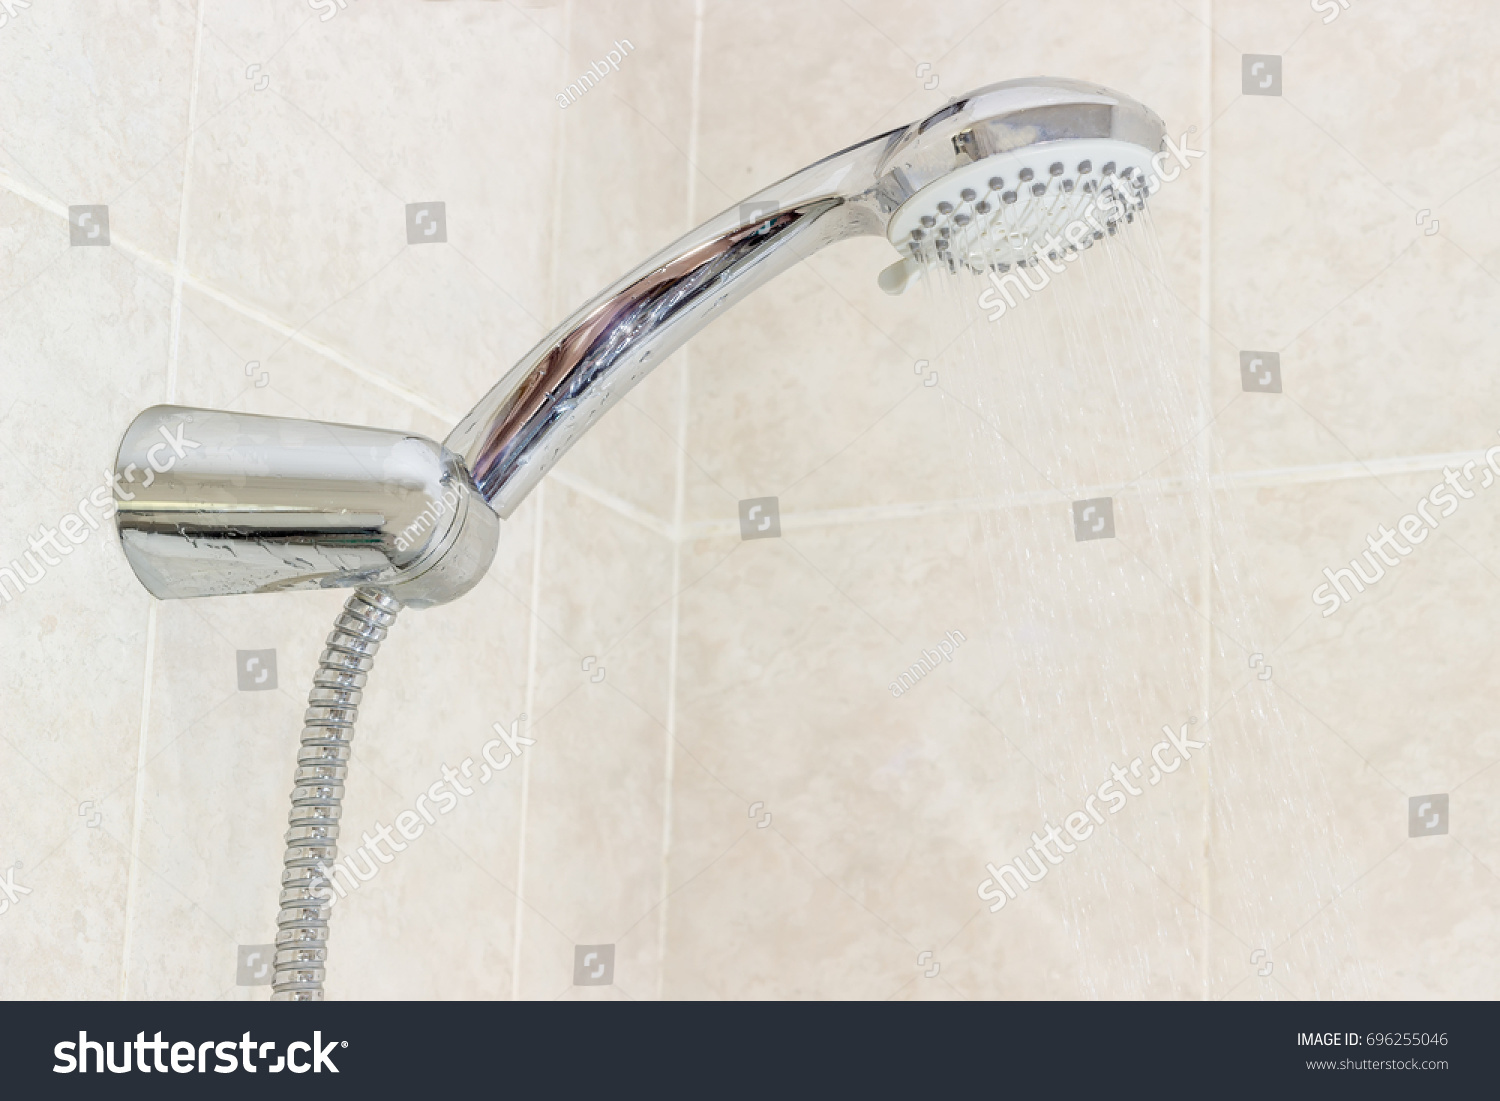 Shower Head Metal Shower Hose Holder Stock Photo 696255046 ...